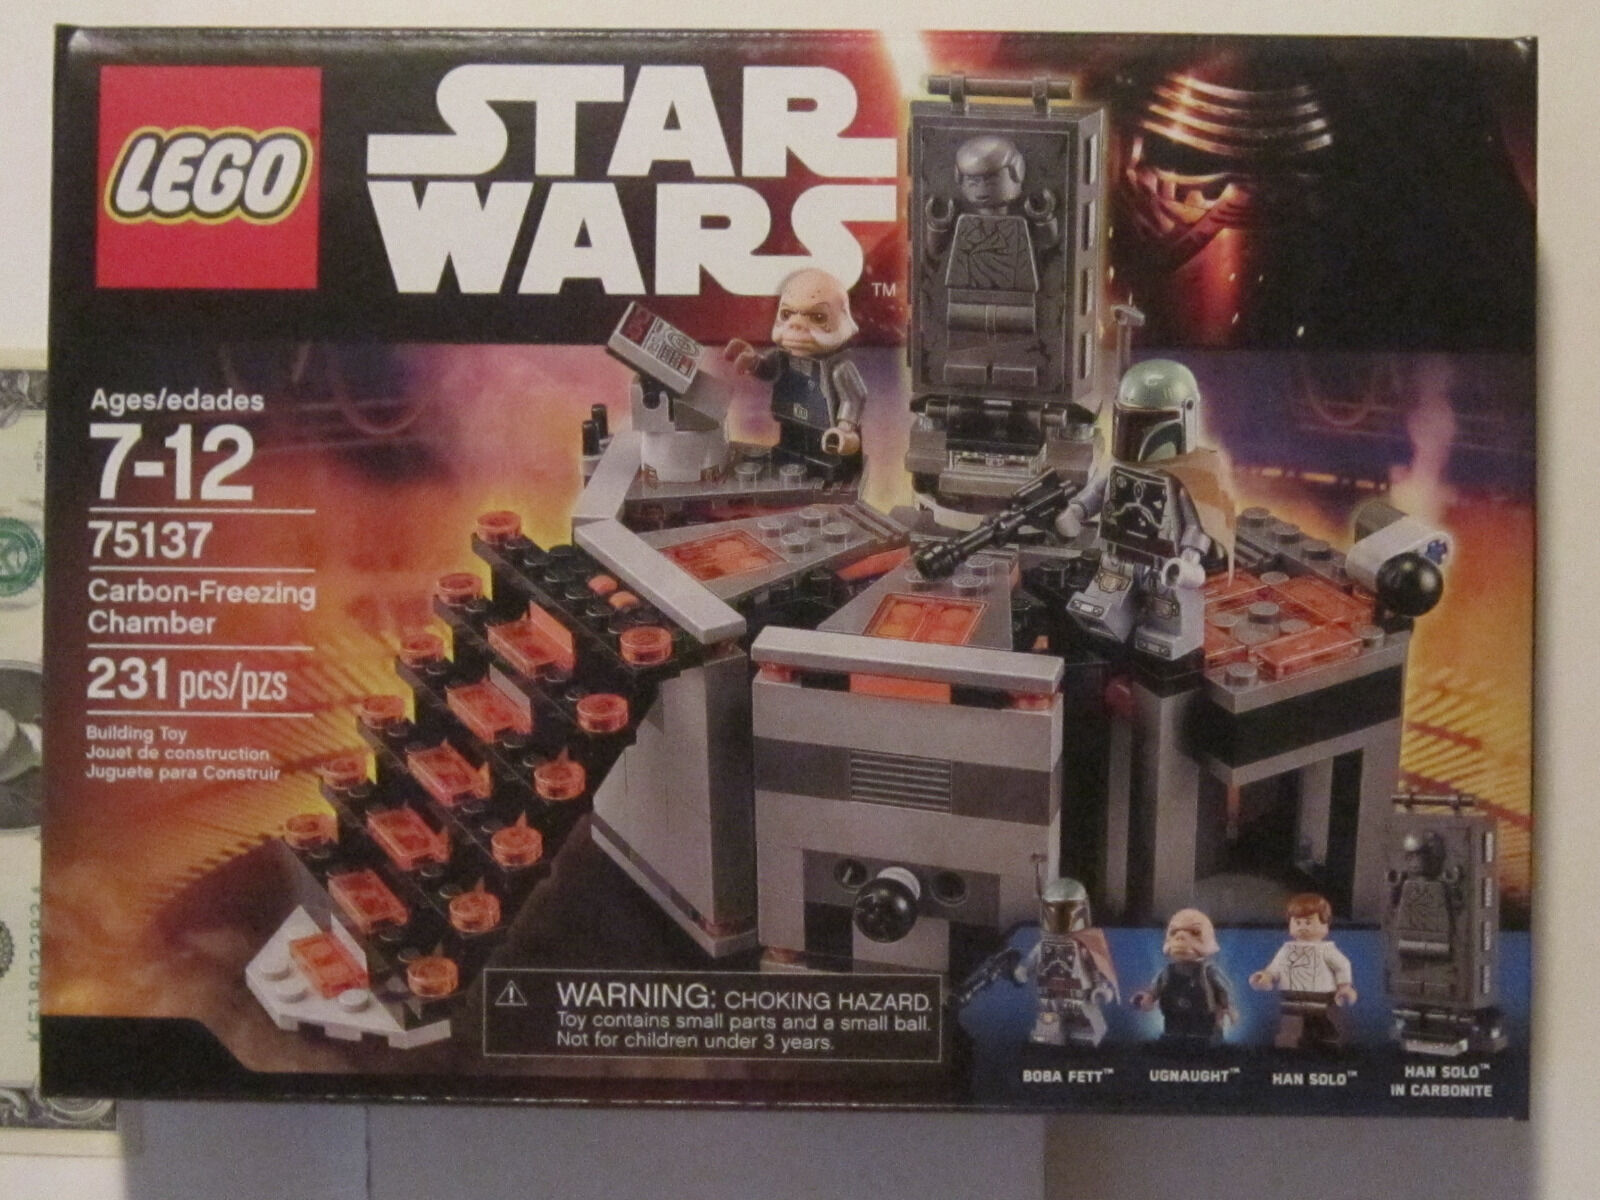 Star Wars Lego Carbon-Freezing Chamber 75137  still factory sealed